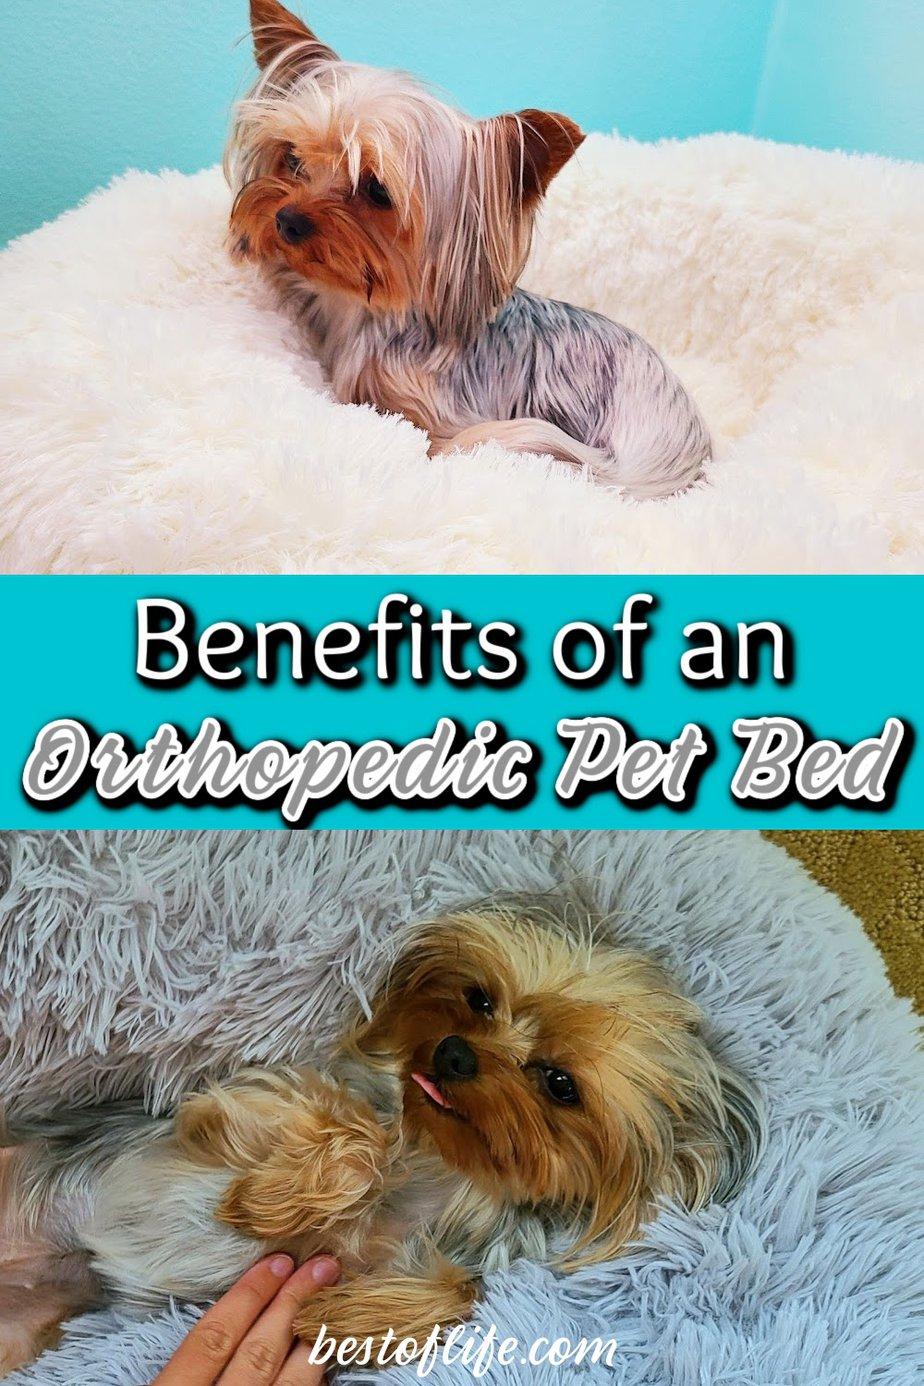 Your fur baby will love these orthopedic pet bed benefits and will sleep better because of them. This pet bed will also help keep your pet's joints aligned while they sleep. Cat or Dog Bed | Raised Dog Bed | Elevated Dog Bed | Orthopedic Dog Bed | What Makes a Good Dog Bed | Tips for Pet Health | Pet Accessories #pets #tips via @thebestoflife